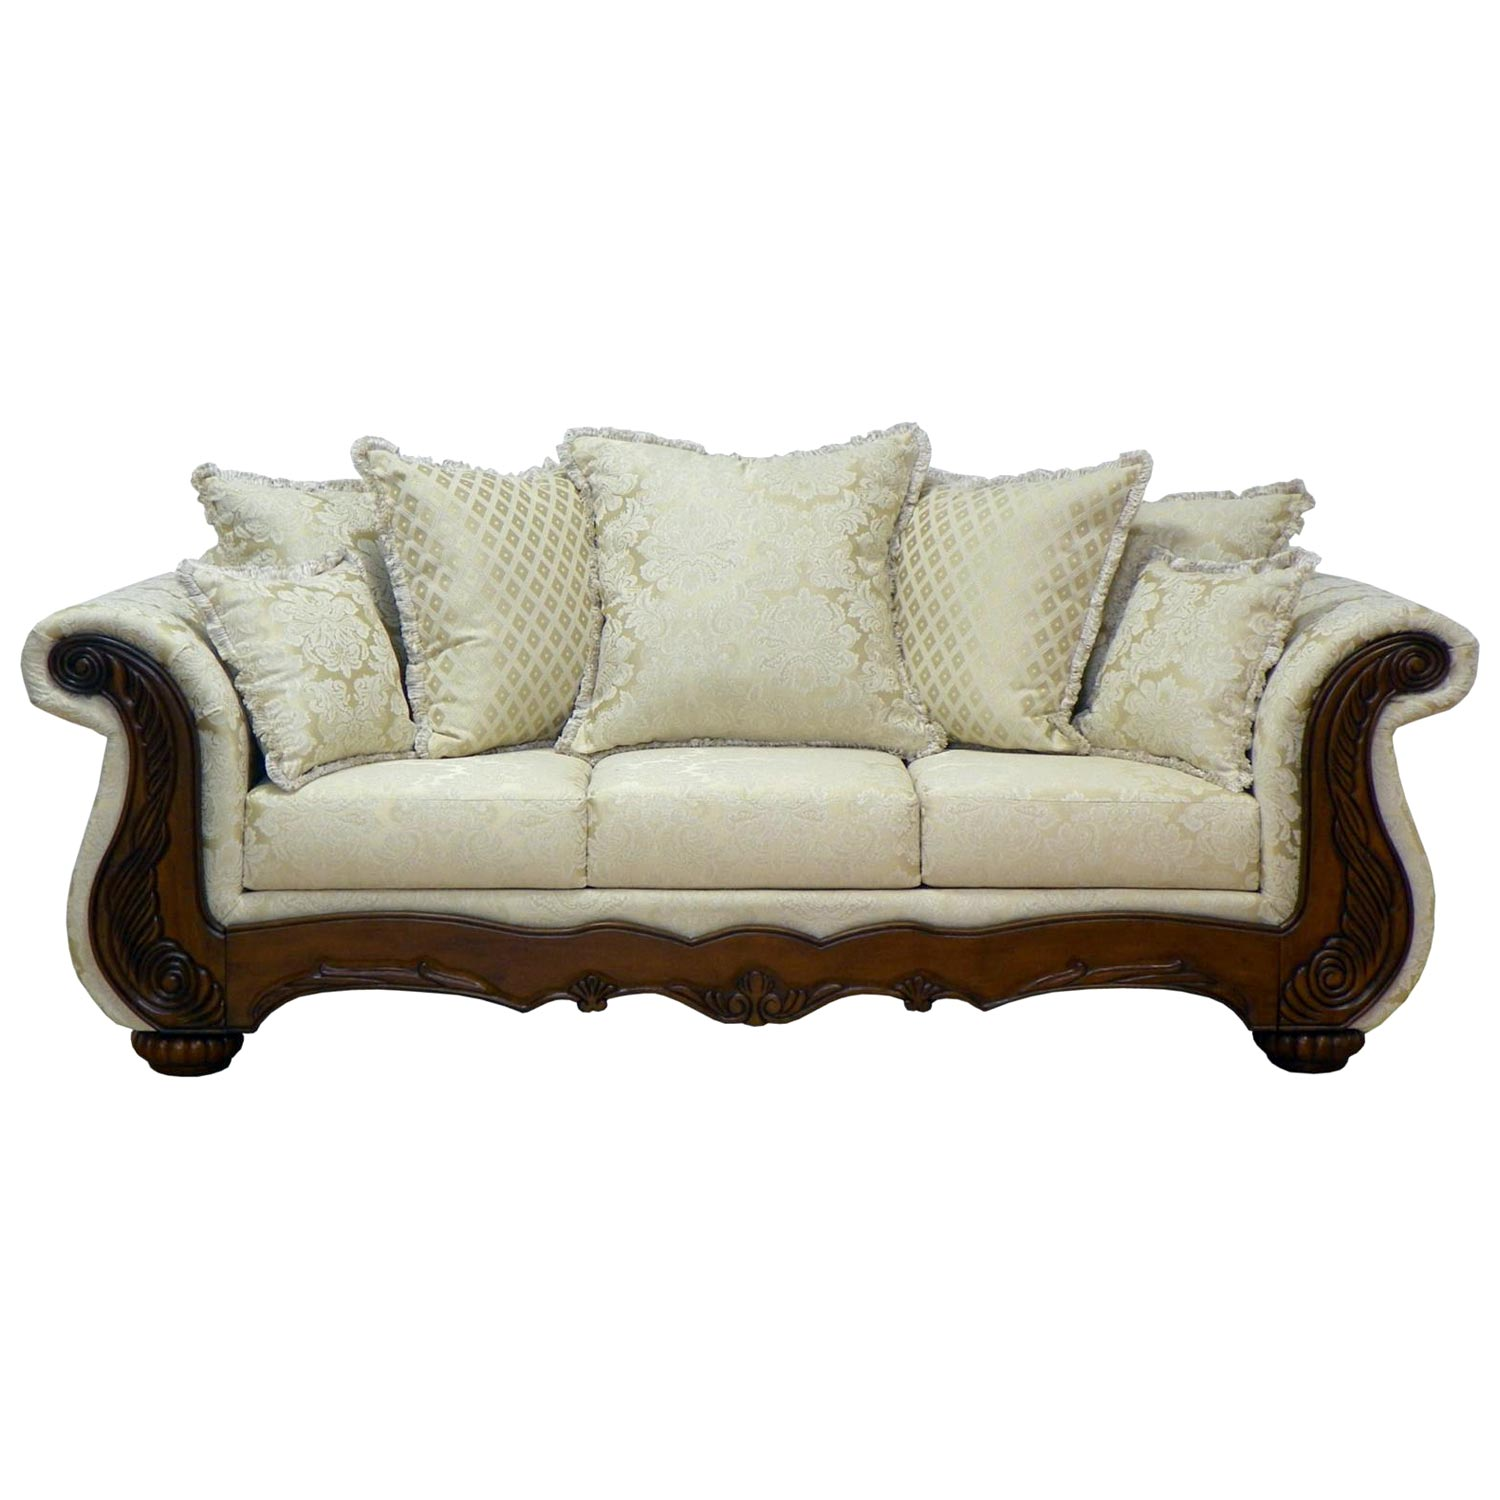 Kate Sleigh Style Sofa - Carved Wood, Madison Straw